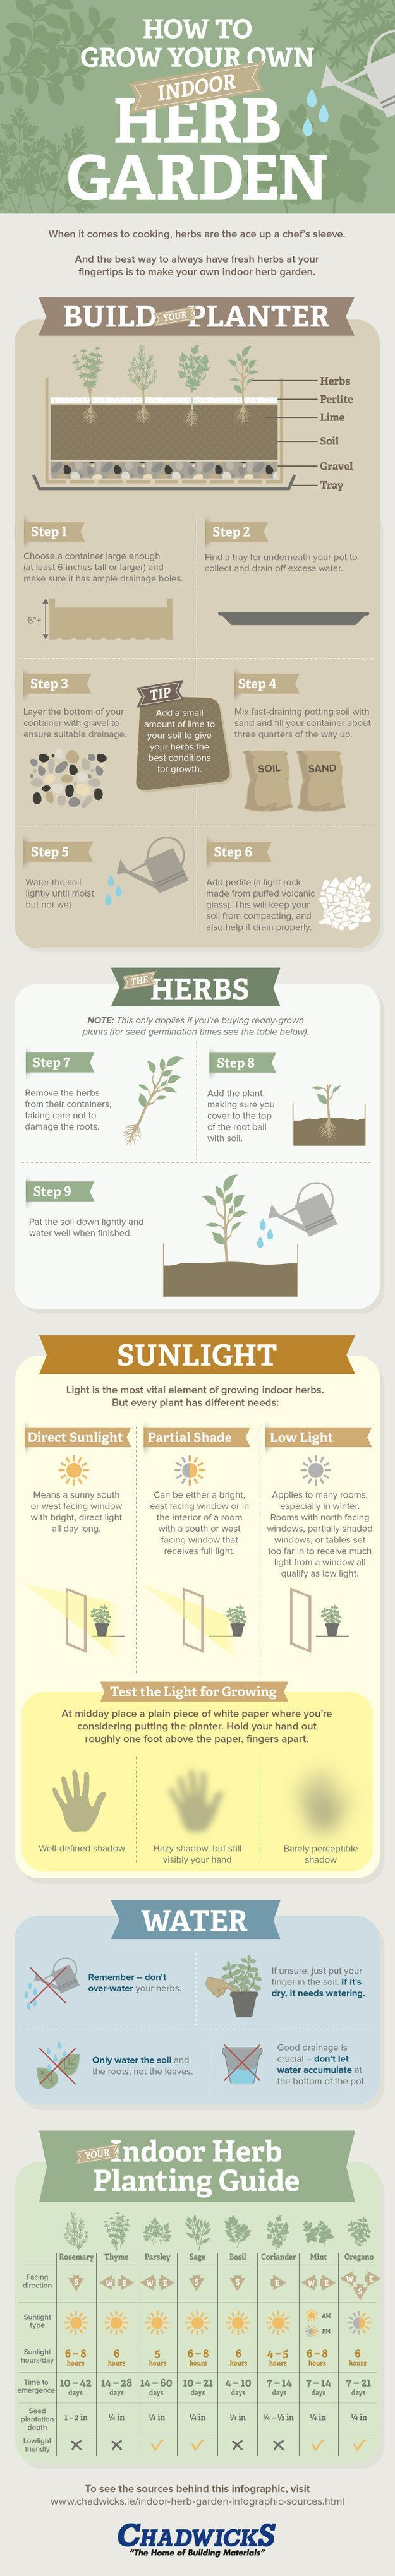 If you plan to grow your herbs indoors, read through this infographic for some helpful hints. | 23 Diagrams That Make Gardening So Much Easier